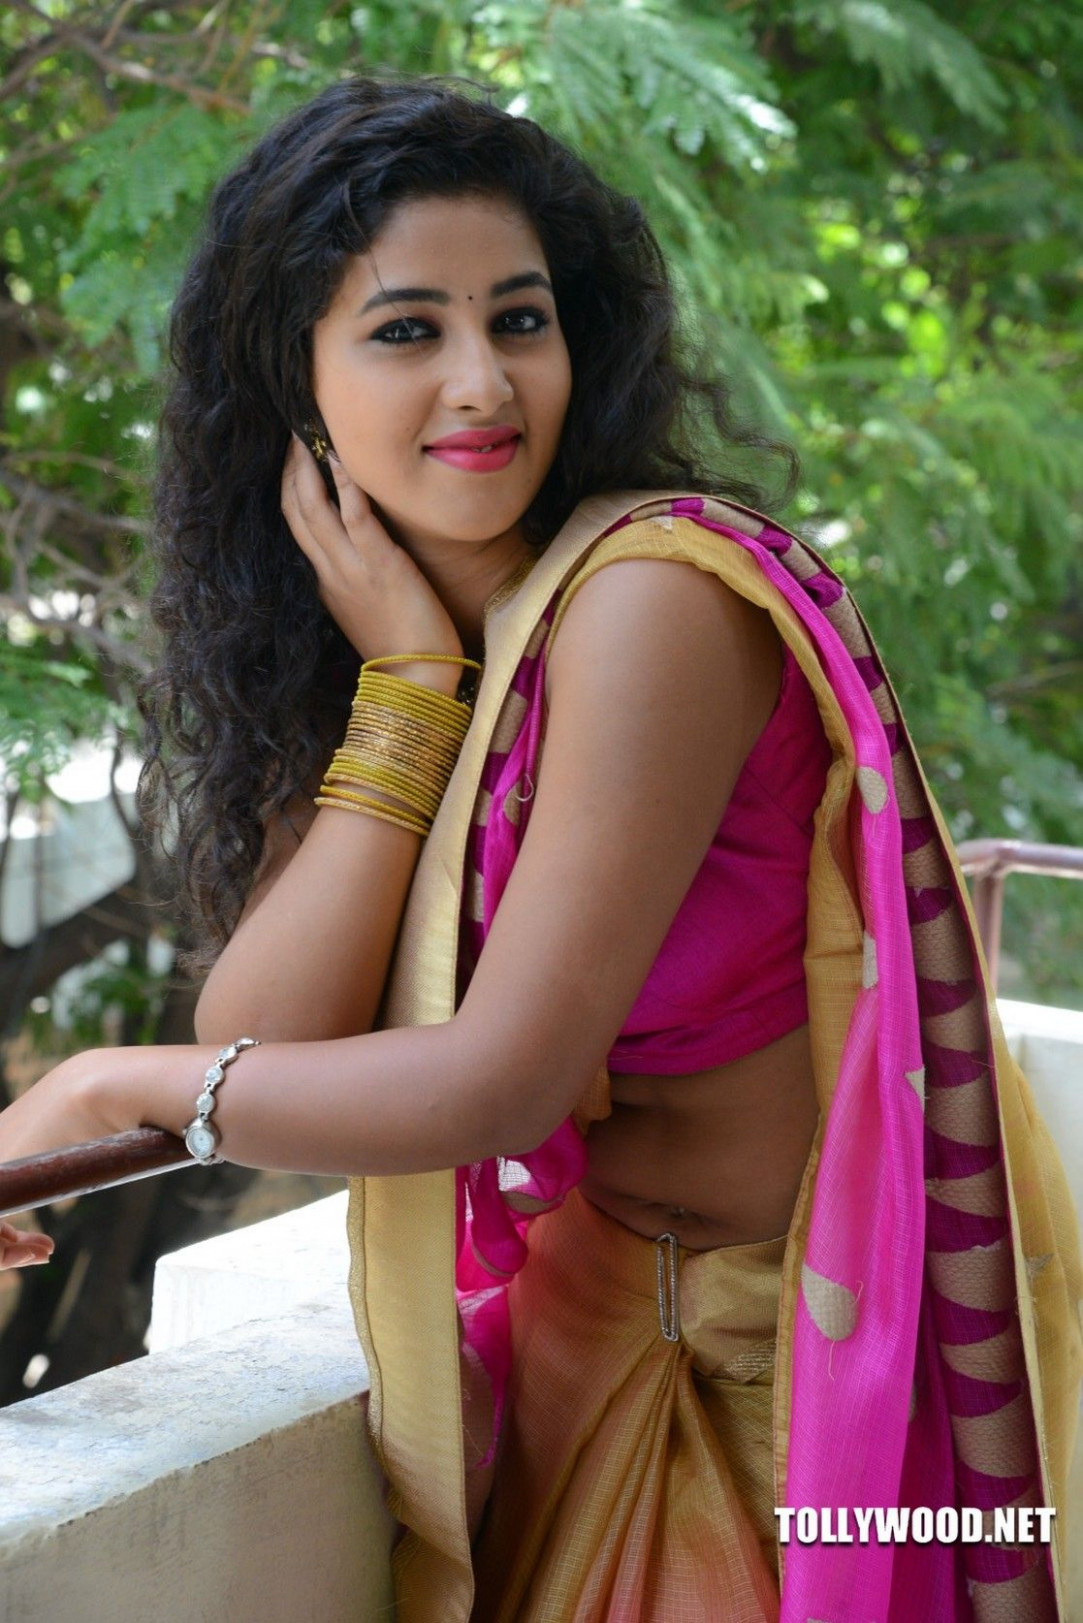 Tollywood PAVANI REDDY NEW GALLERY | sexy saree ...